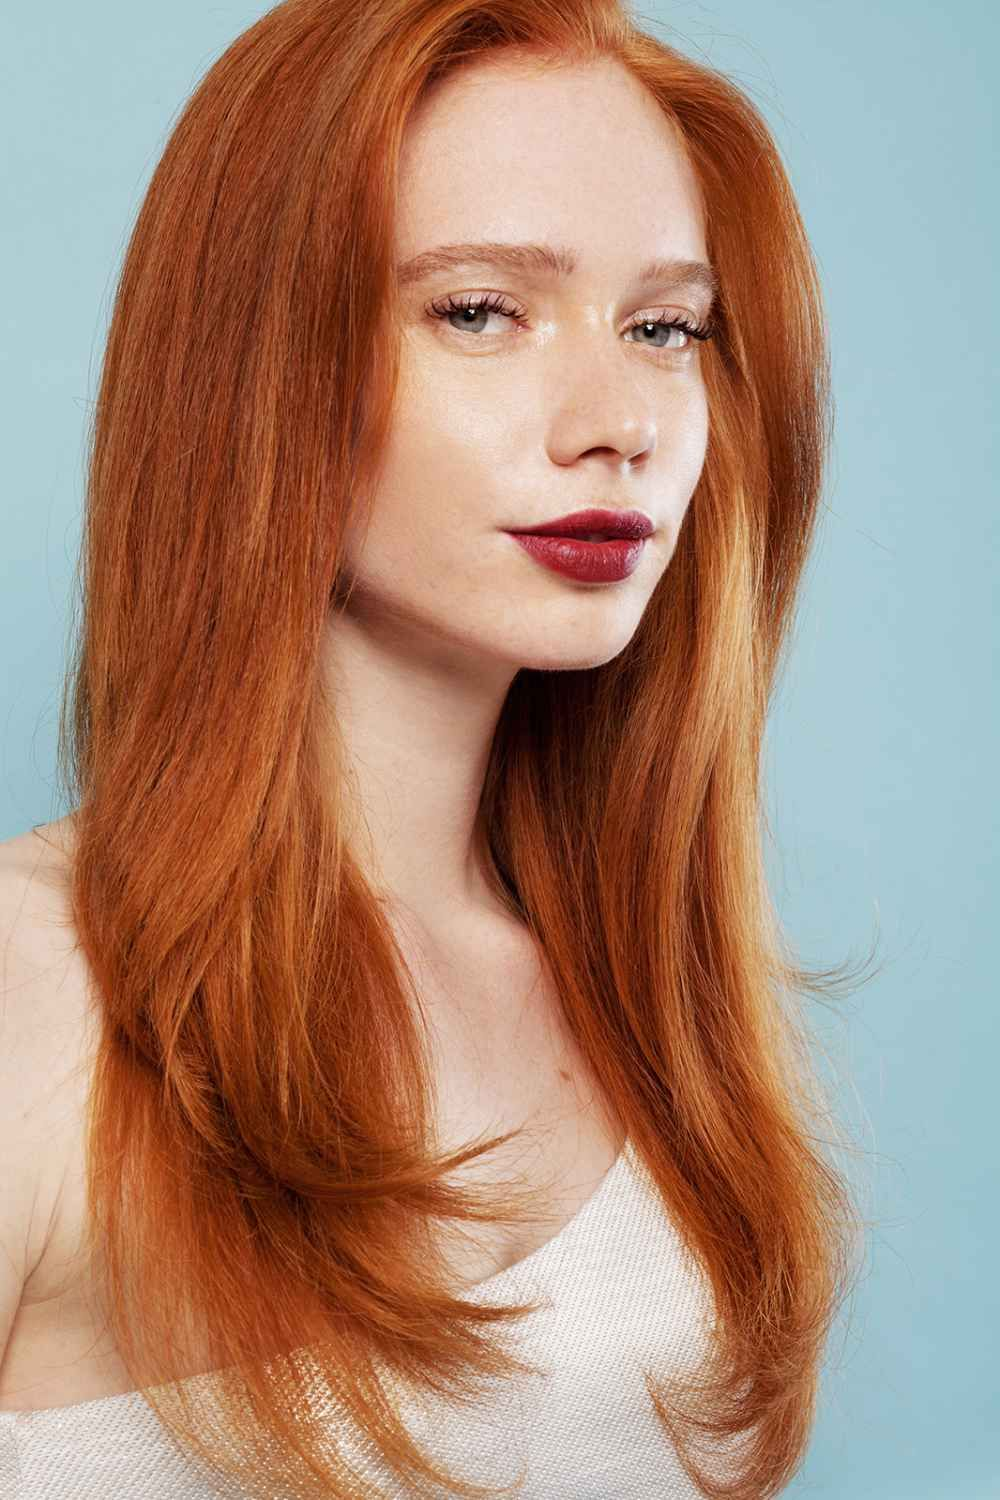 How To Style Frizzy Hair How To Transform Long Frizzy Hair Into Gorgeous Waves  Frizzy Hair